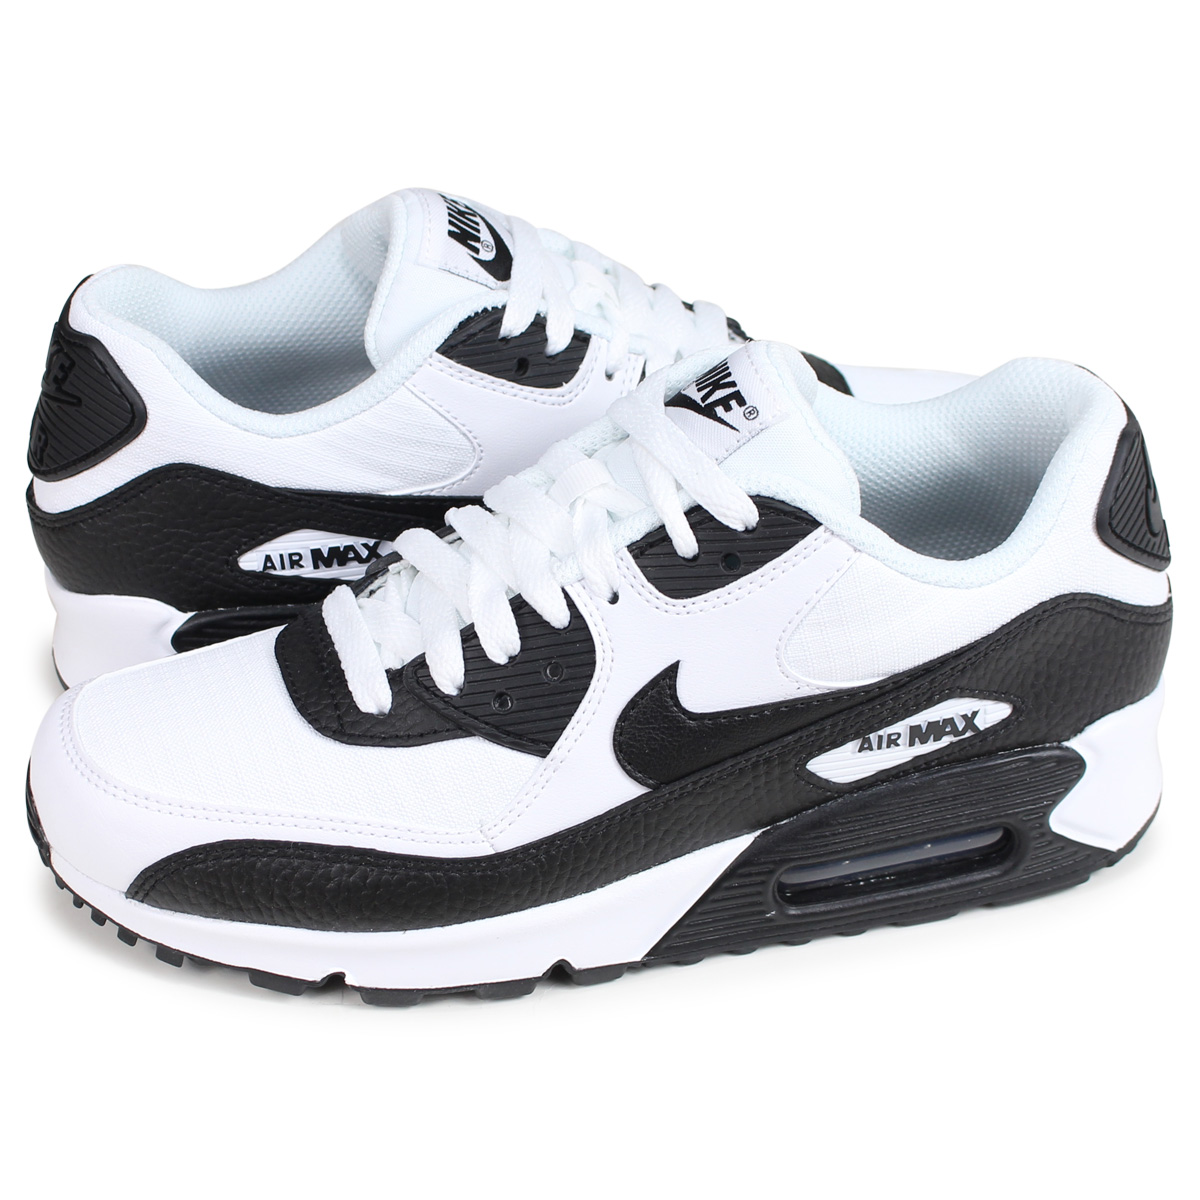 more photos f5482 eaa08 Nike NIKE Air Max 90 sneakers men gap Dis WMNS AIR MAX 90 white white  325,213-139 [the 9/10 additional arrival] [198]